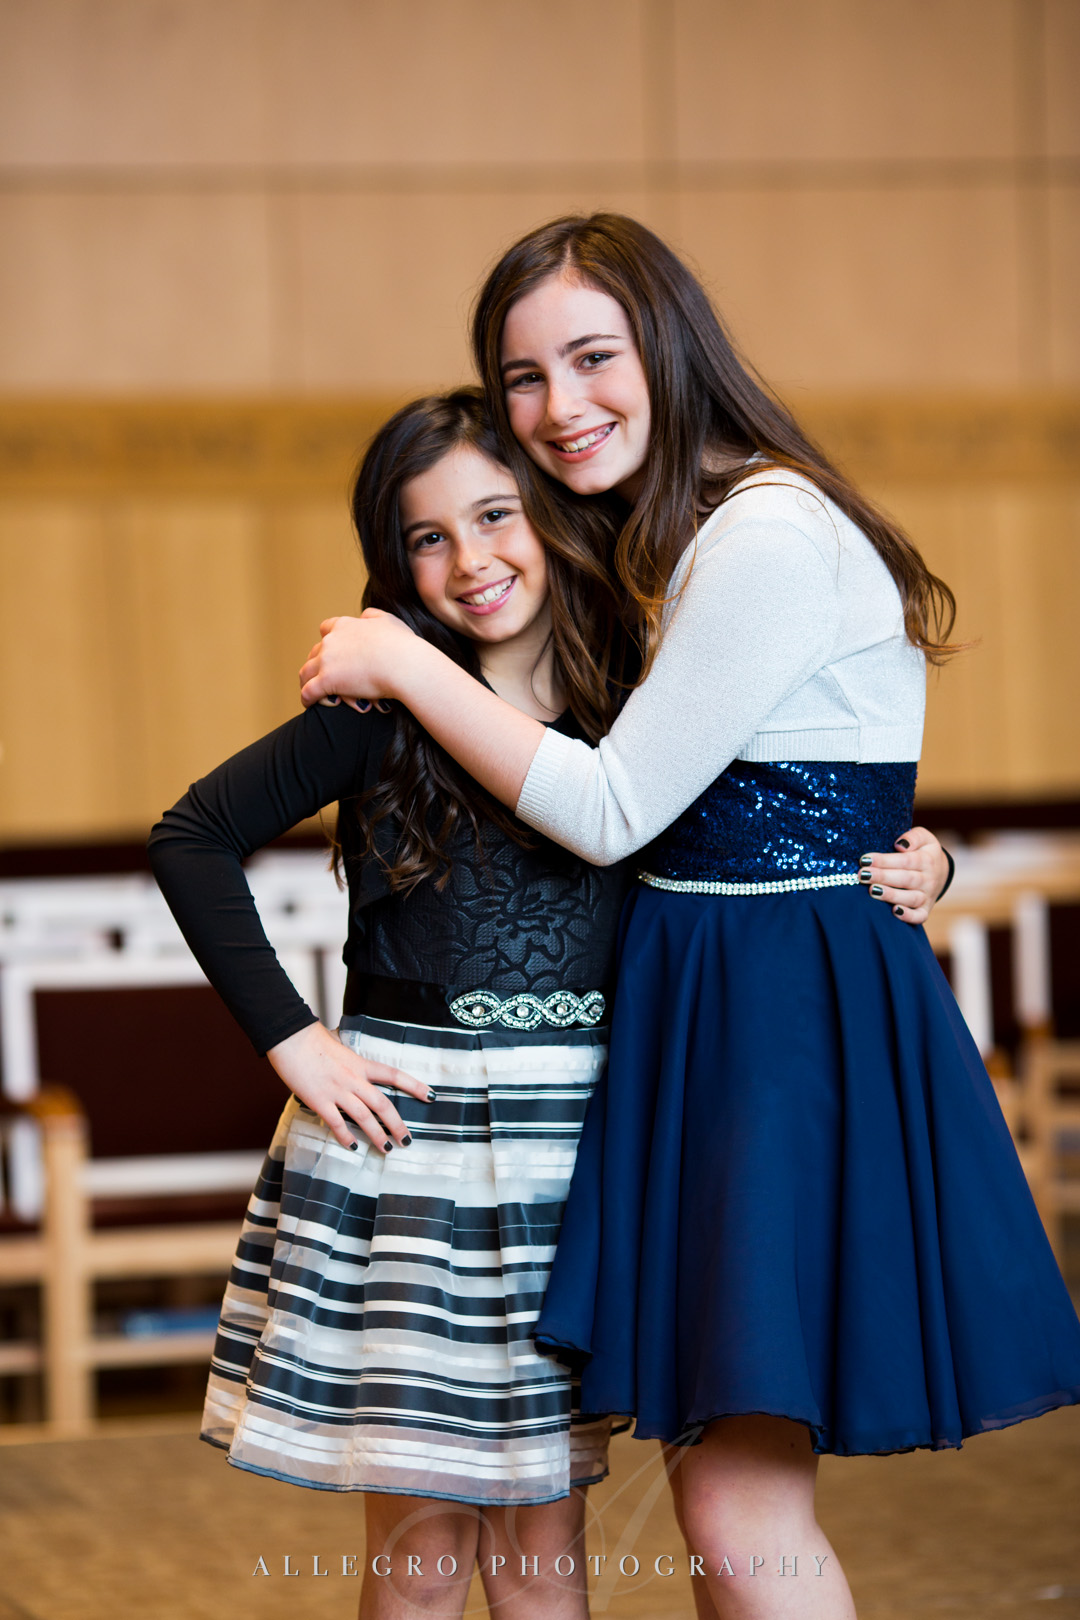 Allegro Photography bat mitzvah tbe wellesley